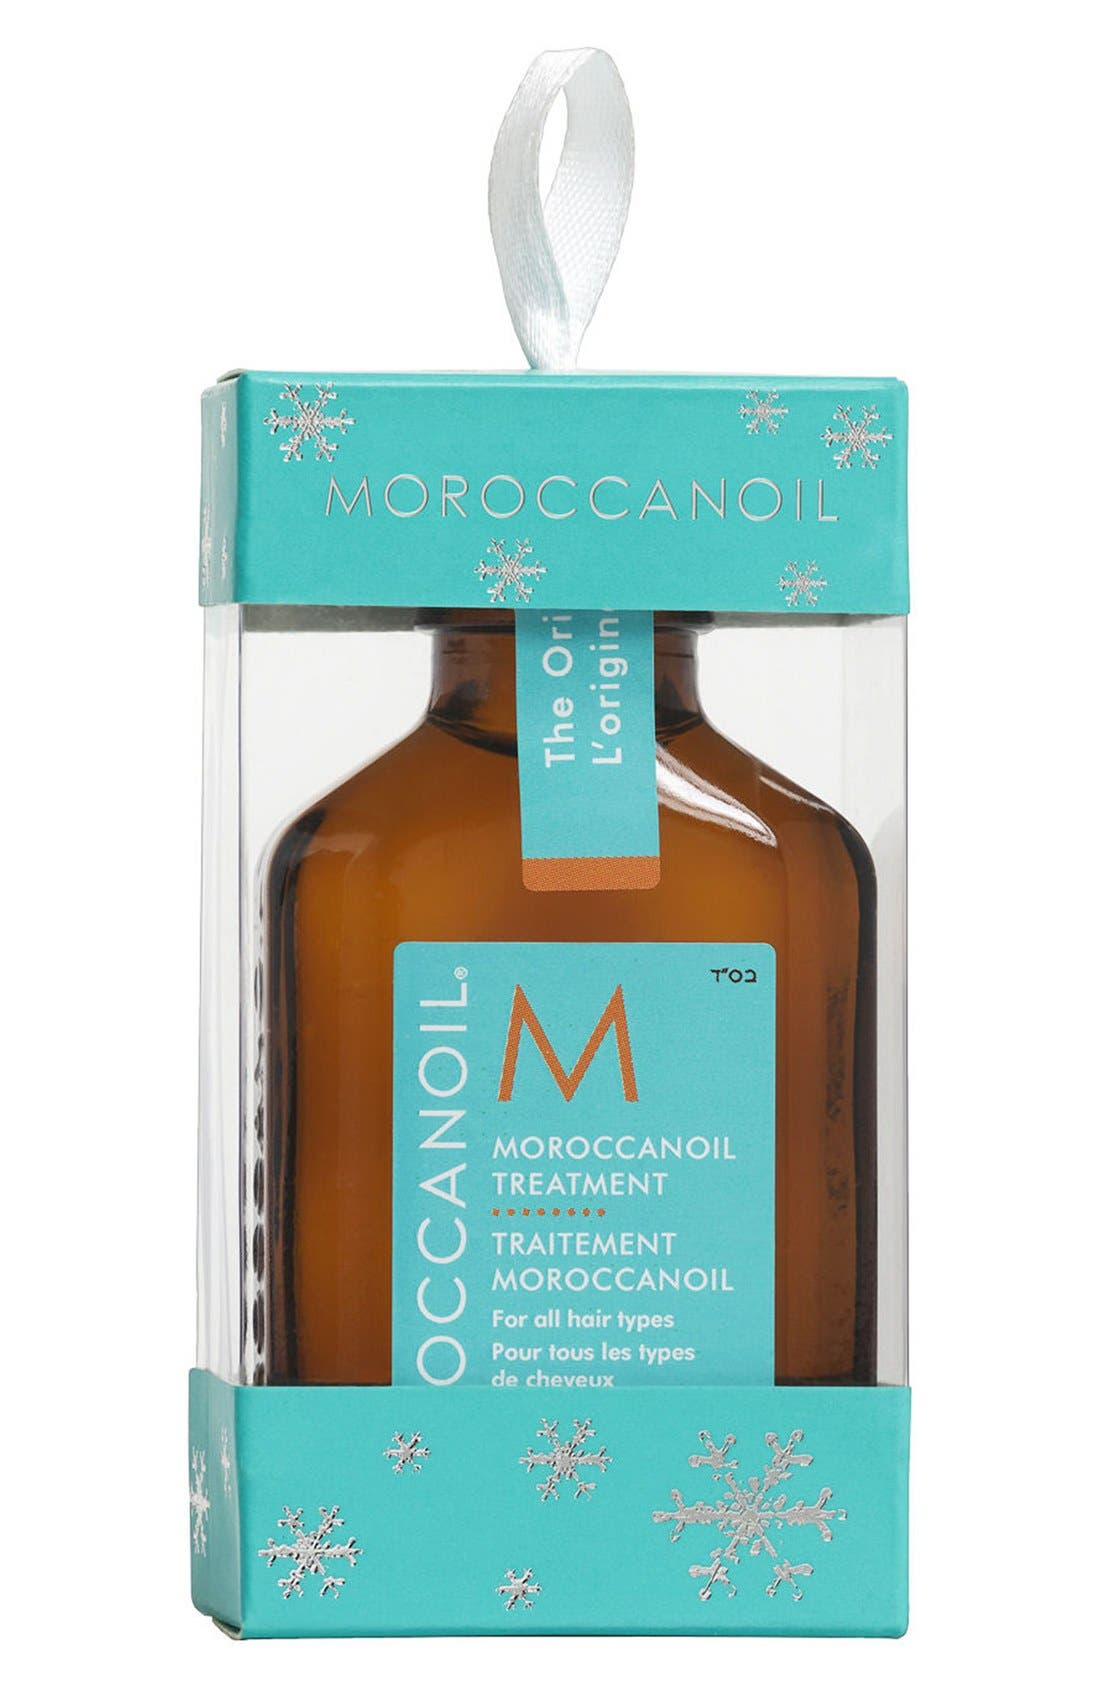 MOROCCANOIL Treatment Ornament